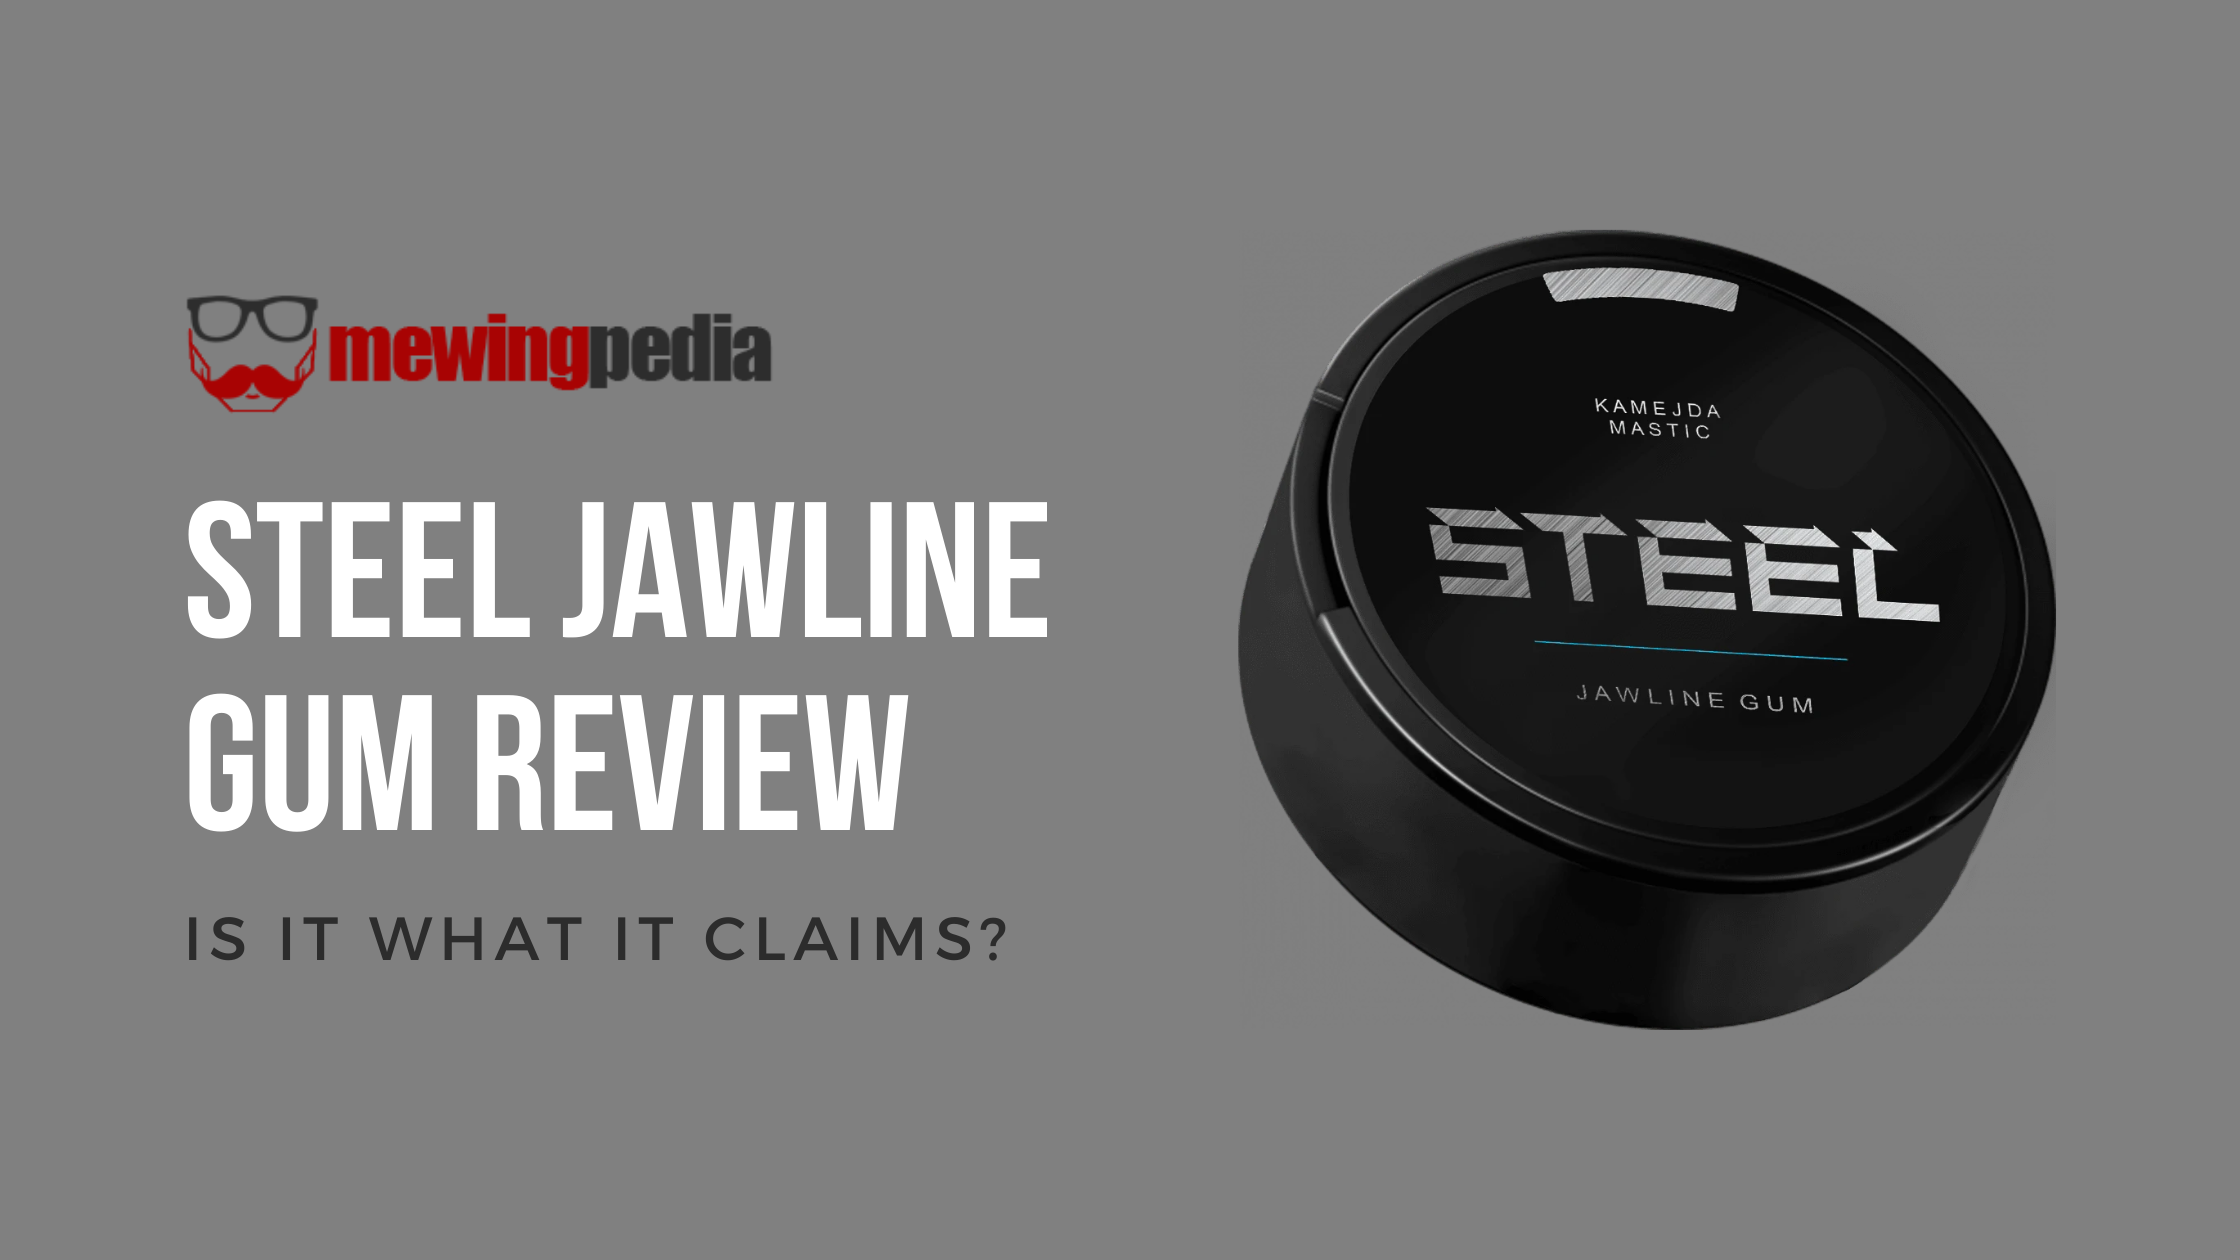 Steel Jawline Gum Review